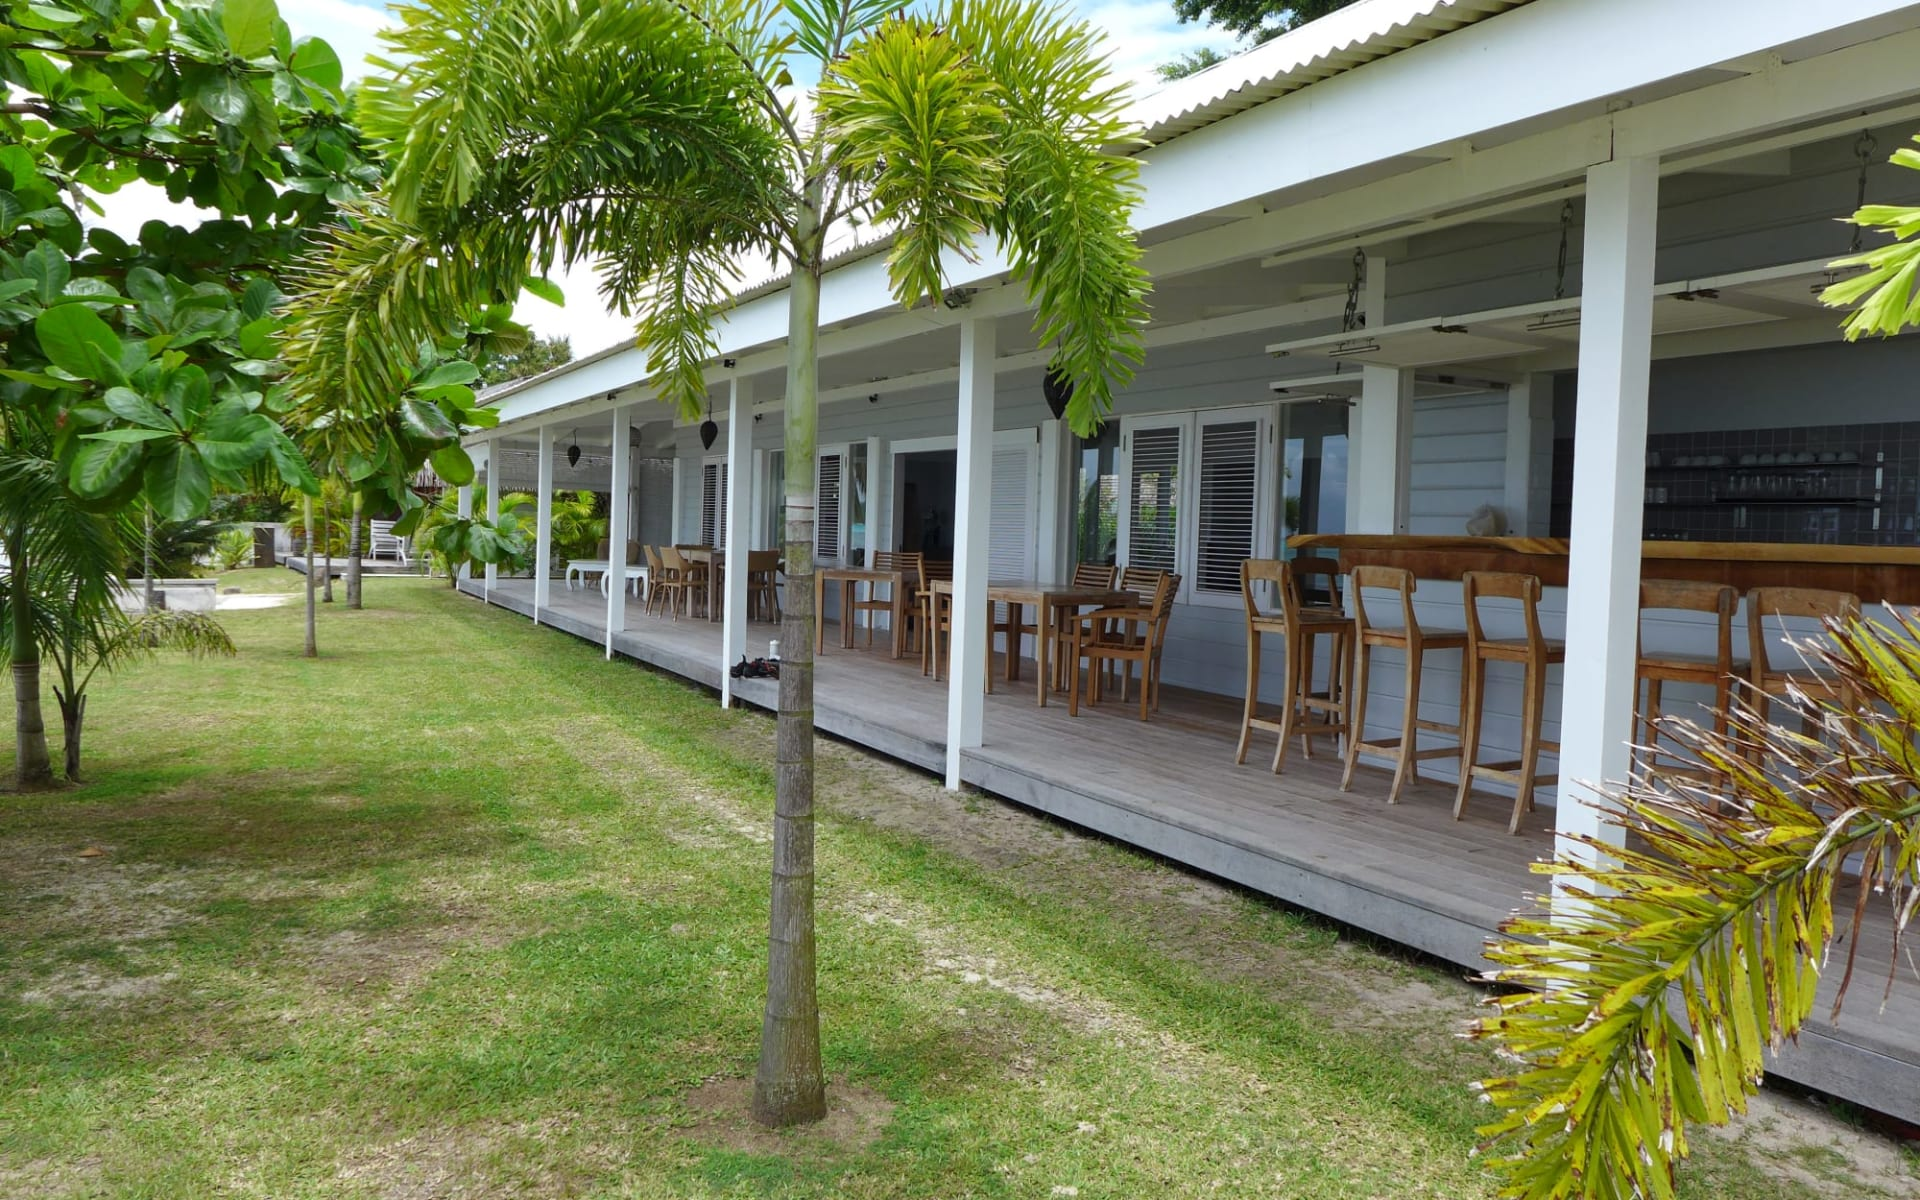 Moorea Beach Lodge:  Moorea Beach Lodge (11)